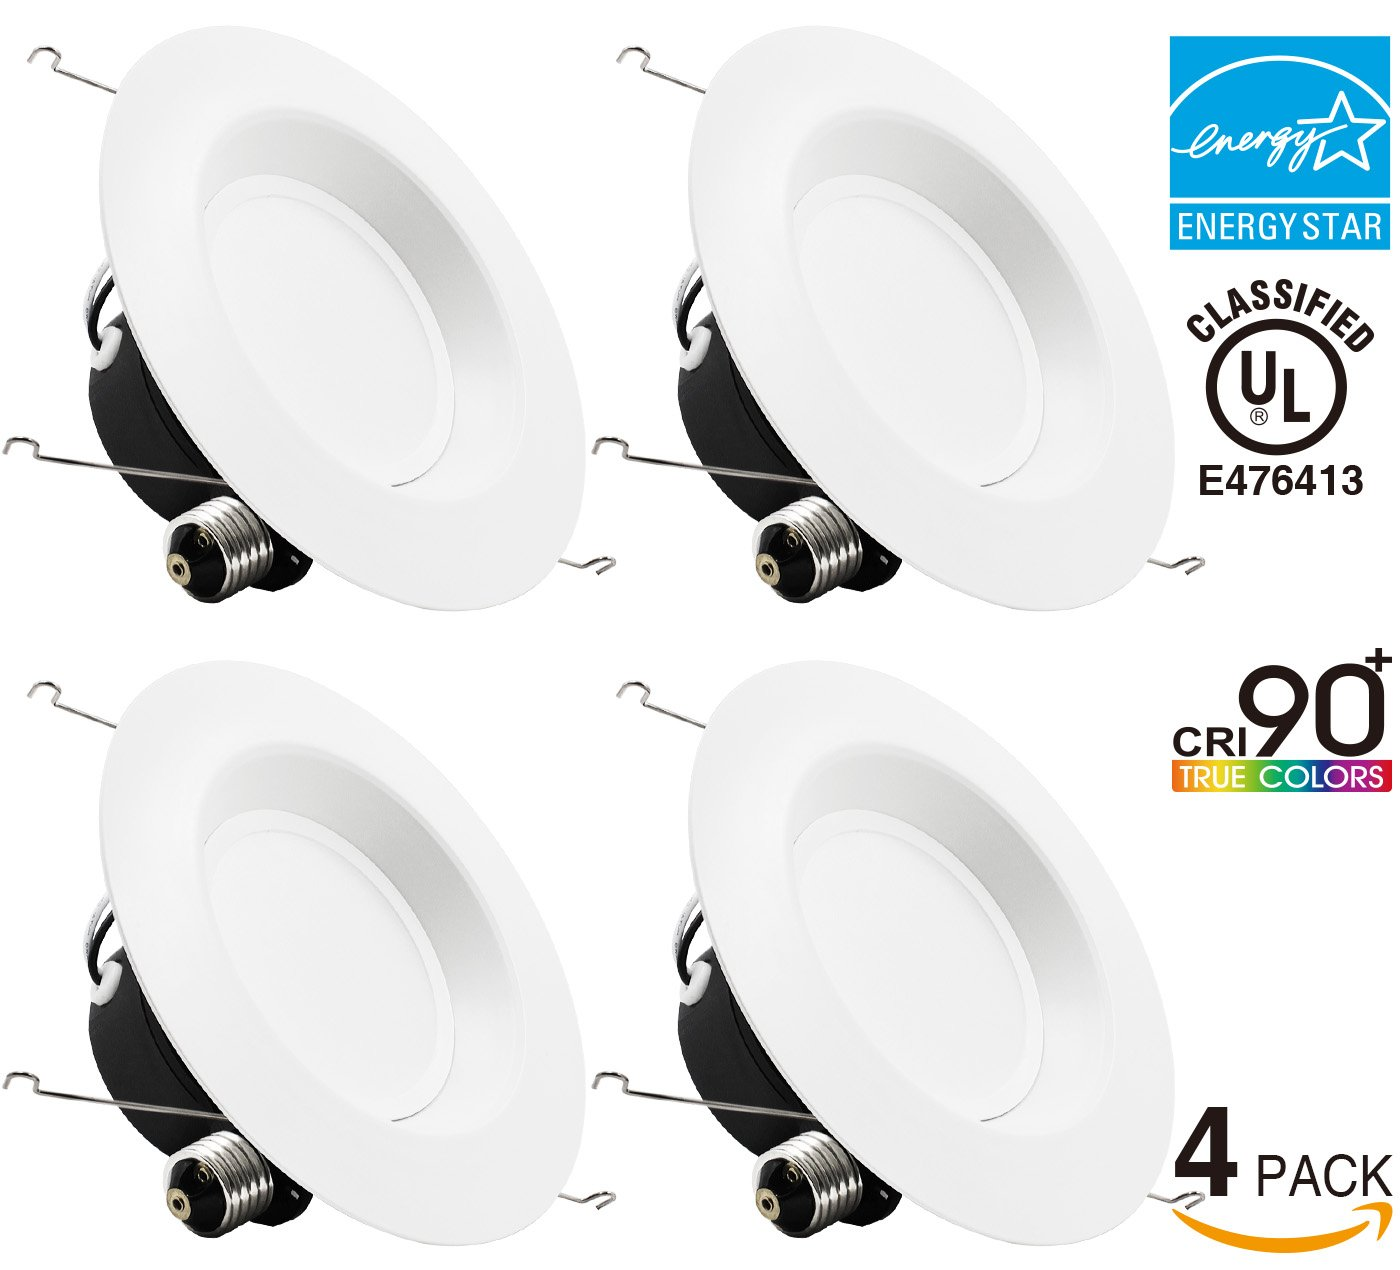 Quiet Box Recessed Lighting : Pack w inch high cri dimmable retrofit led recessed